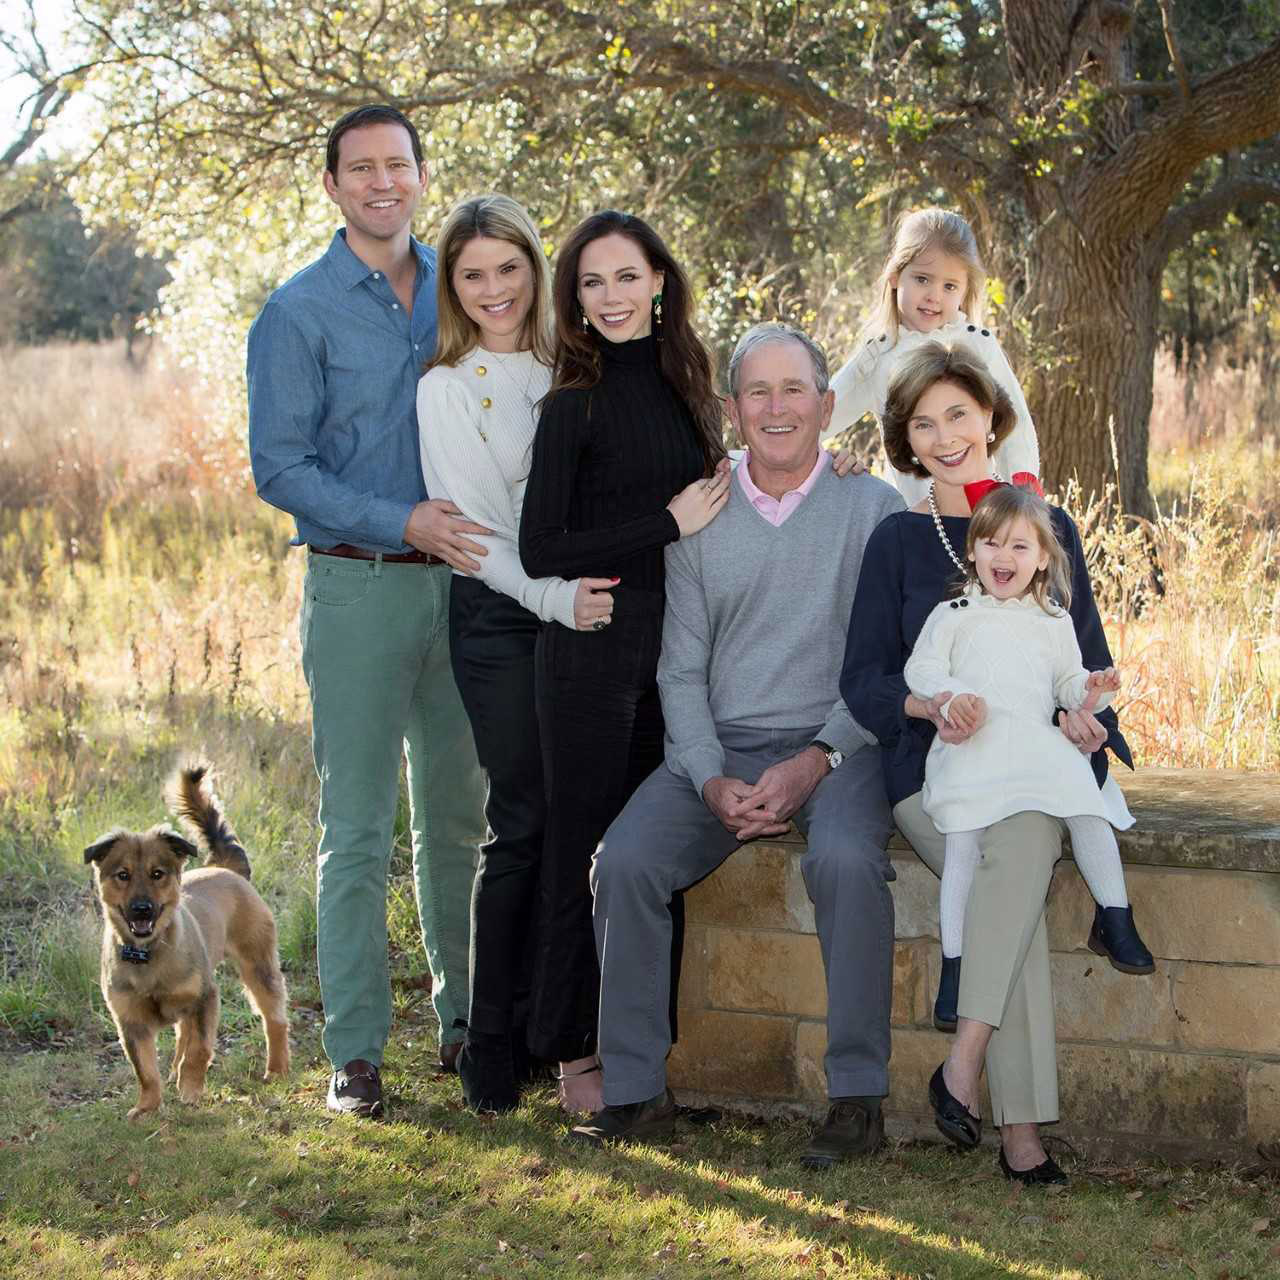 George W. Bush's Adorable Granddaughters -- and Dog -- Steal the Show in Family Christmas Photo